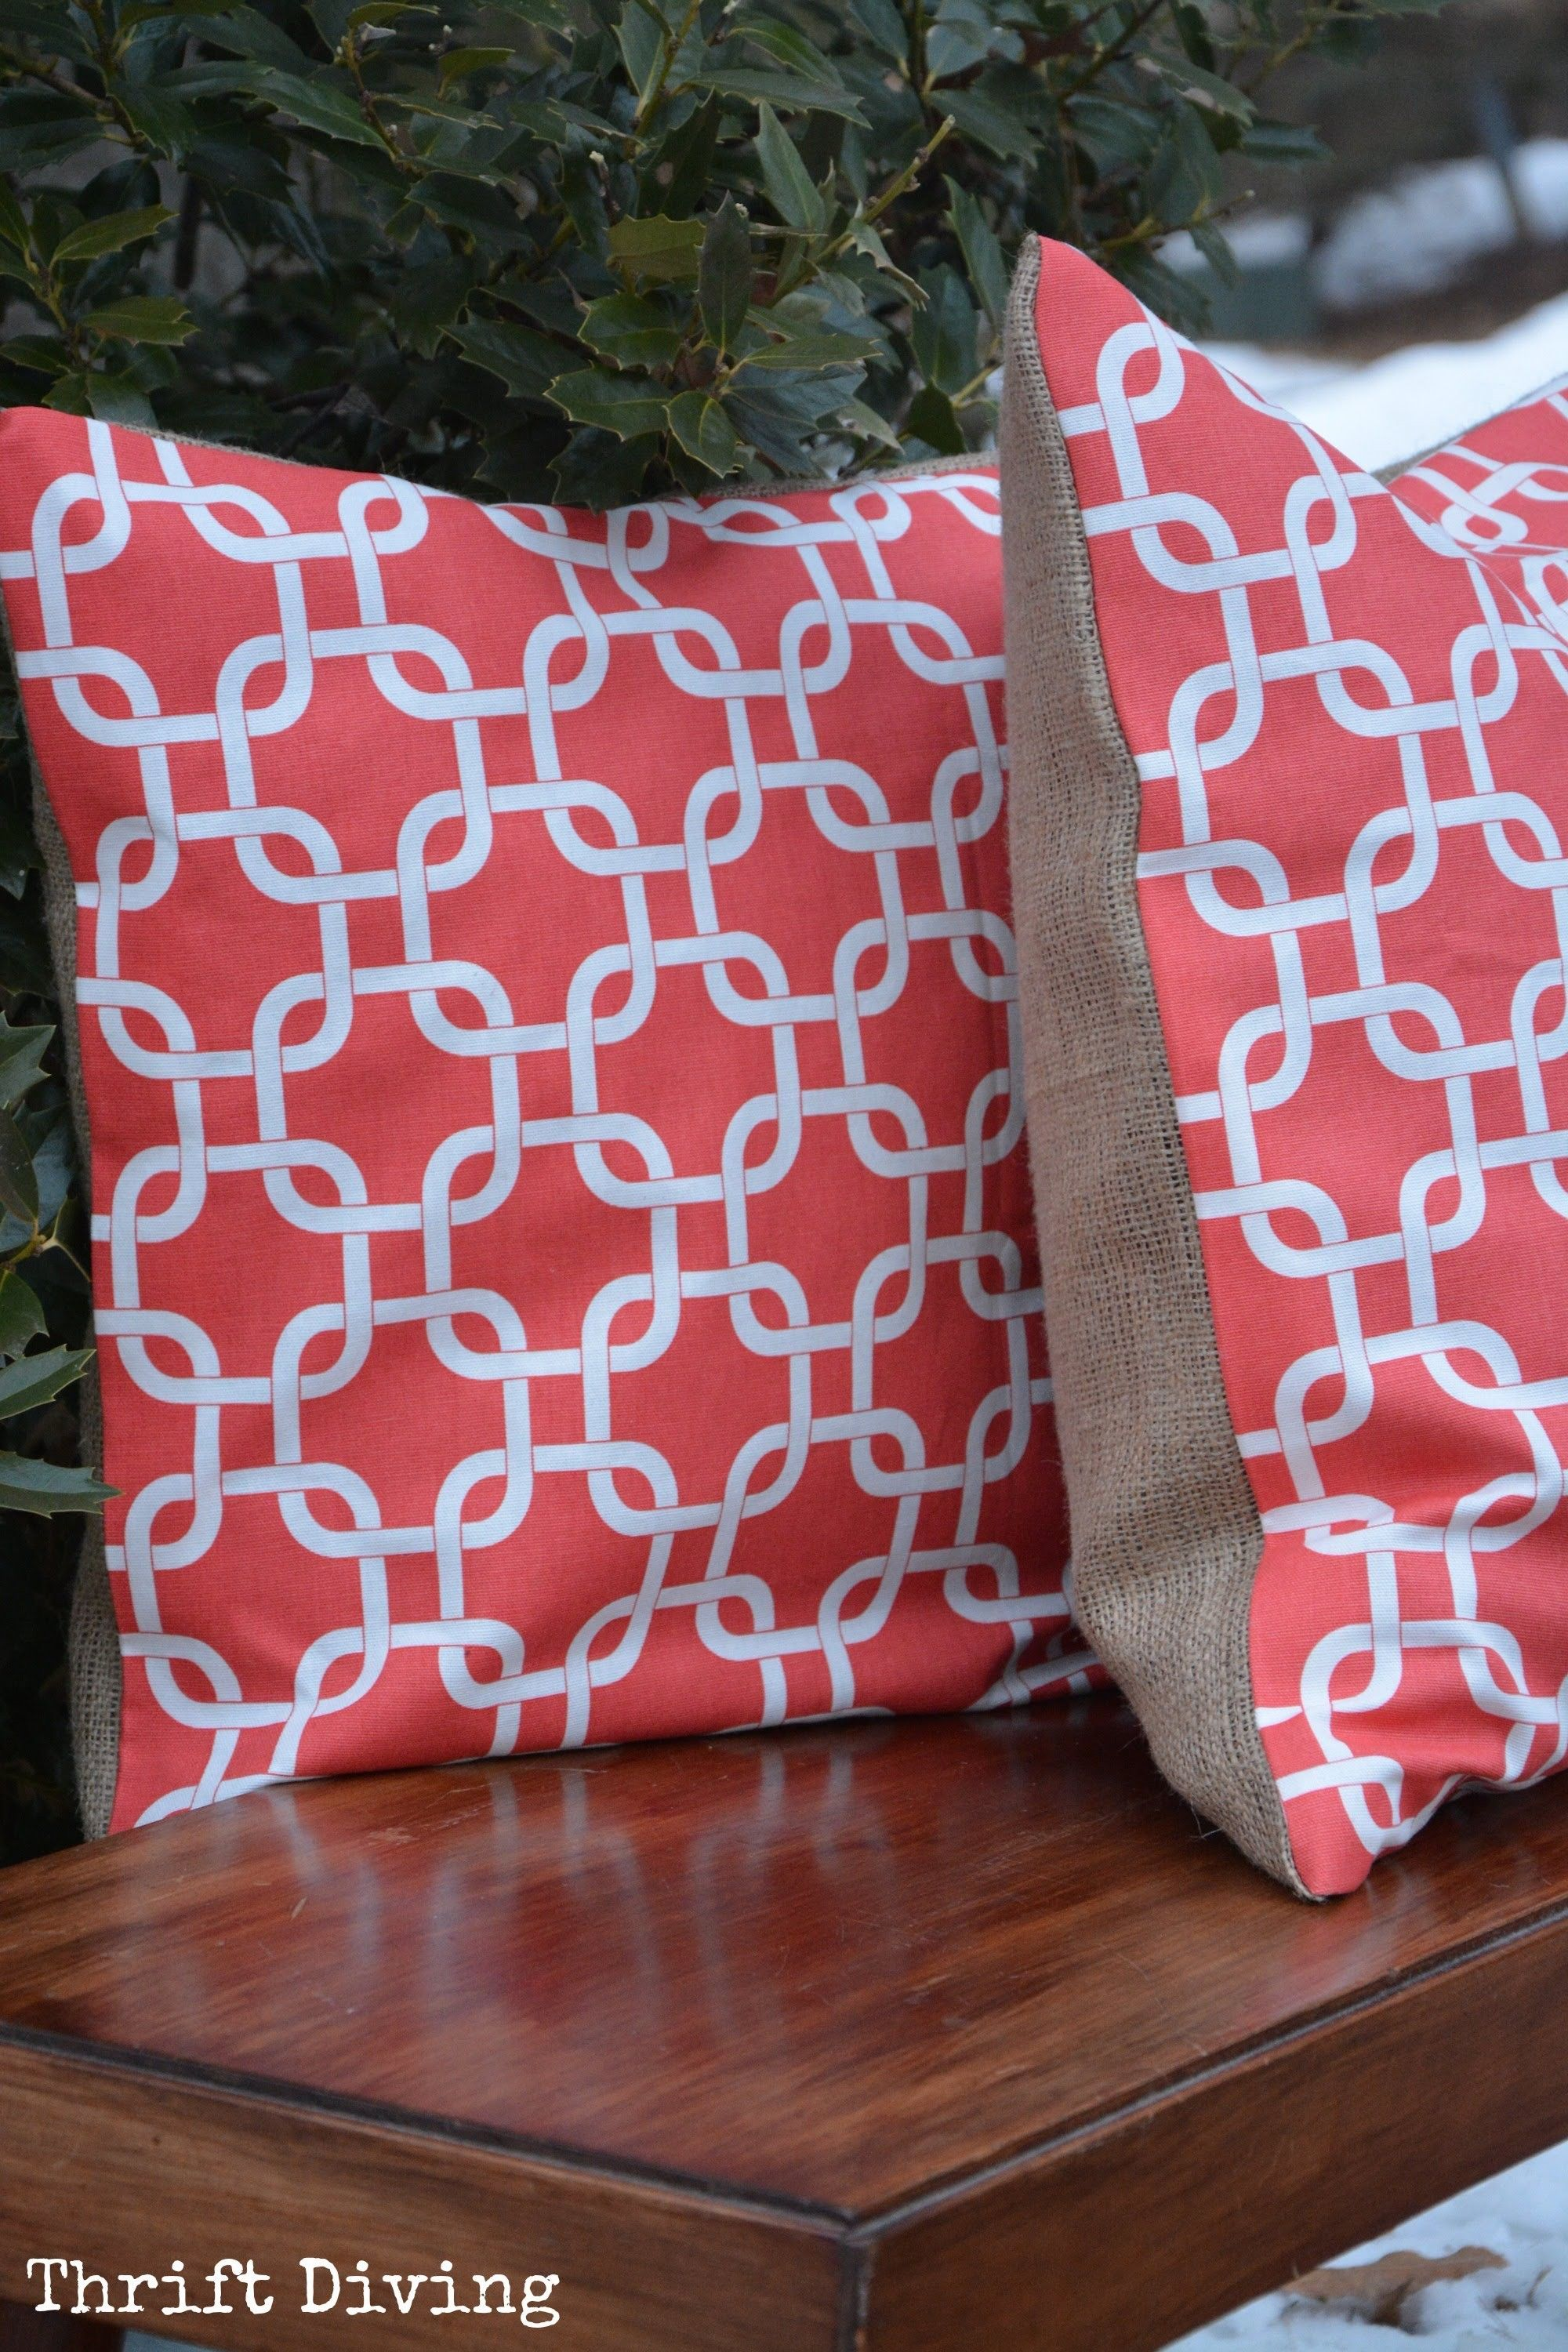 How to make a no sew pillow diy tutorial thrift diving sew